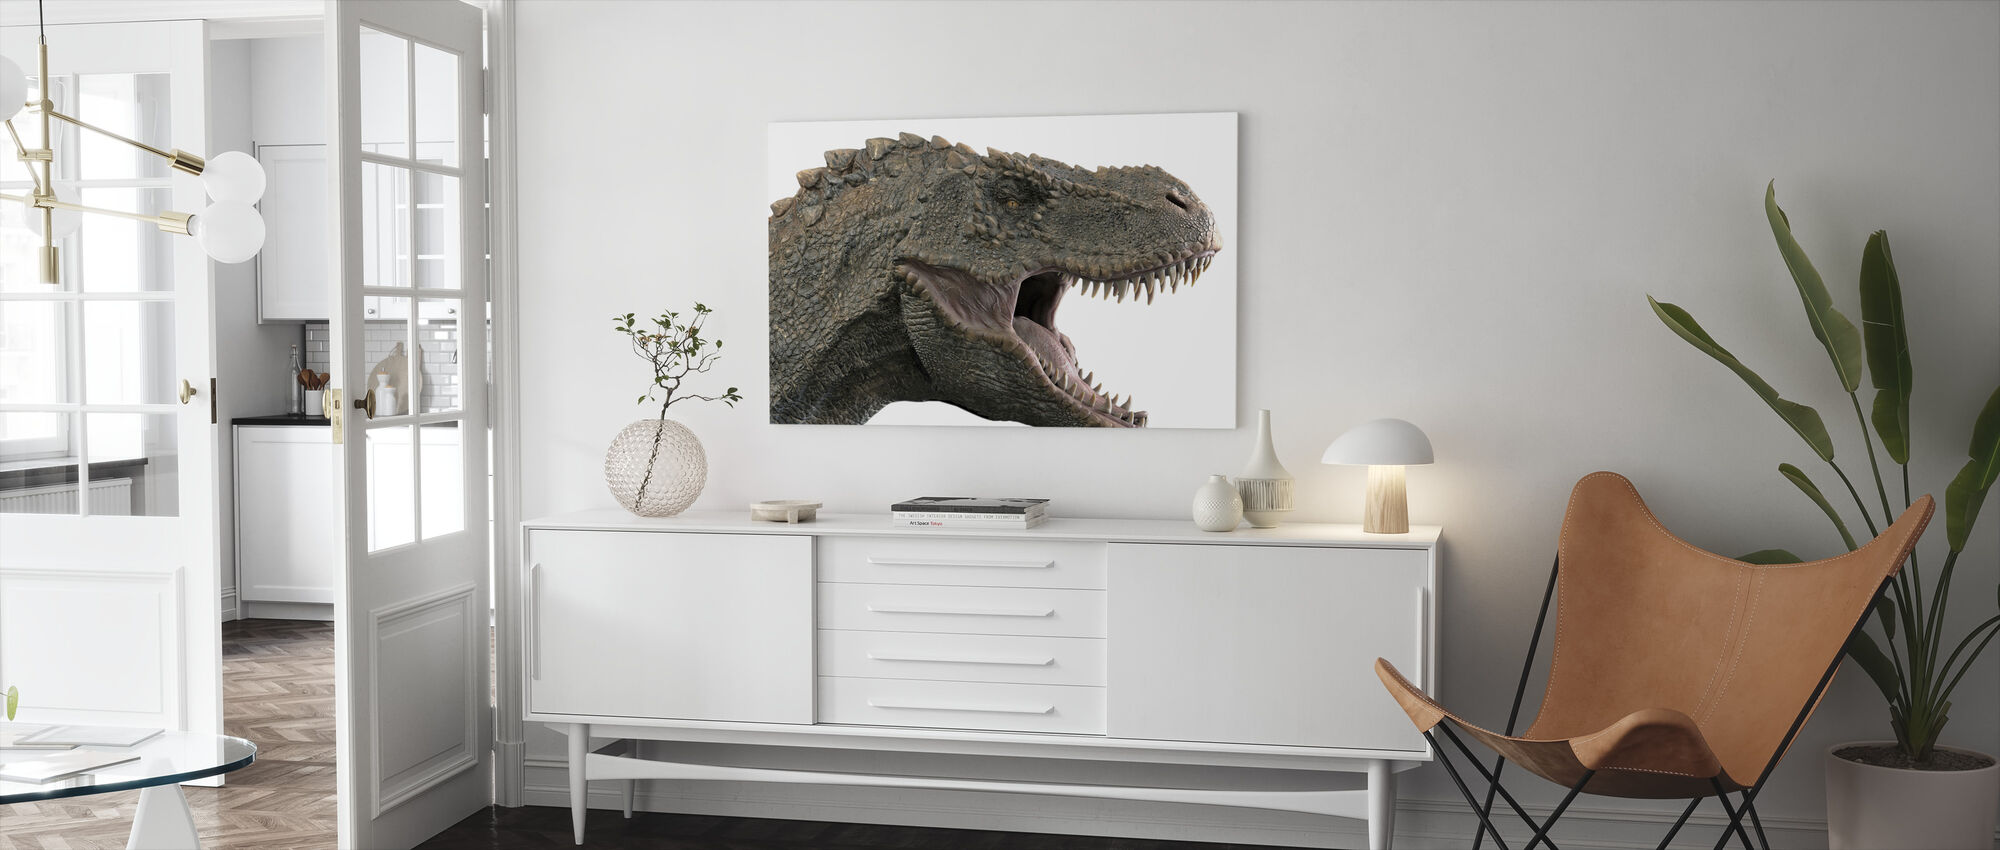 T-Rex Dinosaur - Canvas print - Living Room